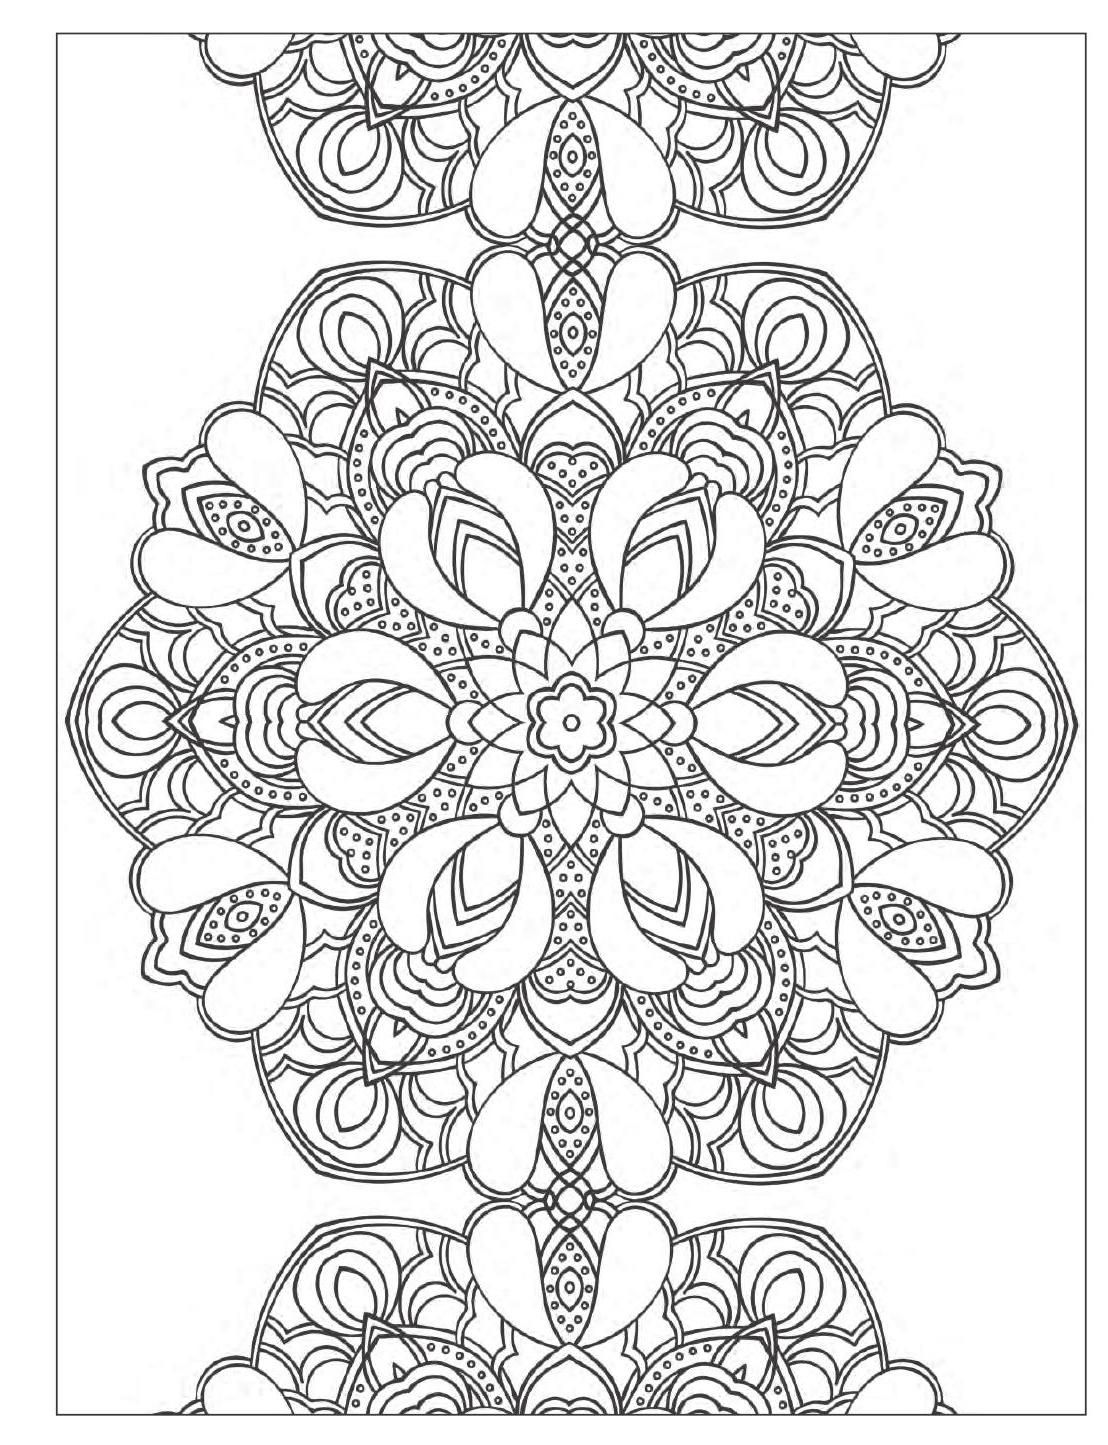 Yoga And Meditation Coloring Book For Adults With Yoga Poses And Mandalas Coloring Books Mandala Coloring Free Coloring Pages